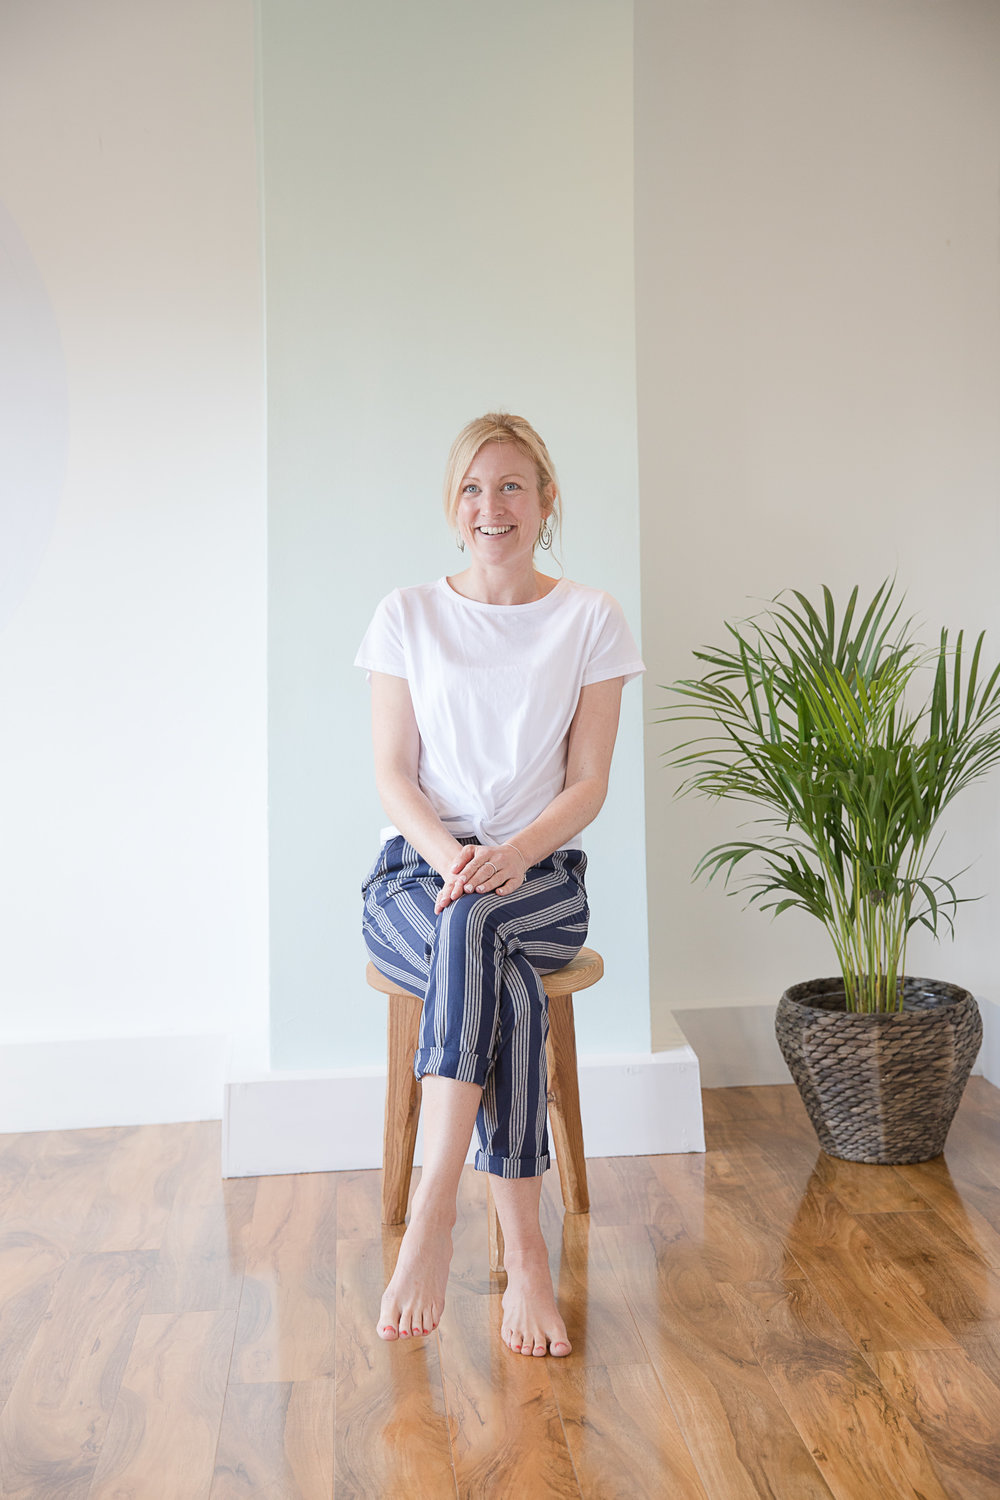 Chew Valley Wellbeing yoga and massage Bristol by Chloe Edwards Photography-1665.jpg